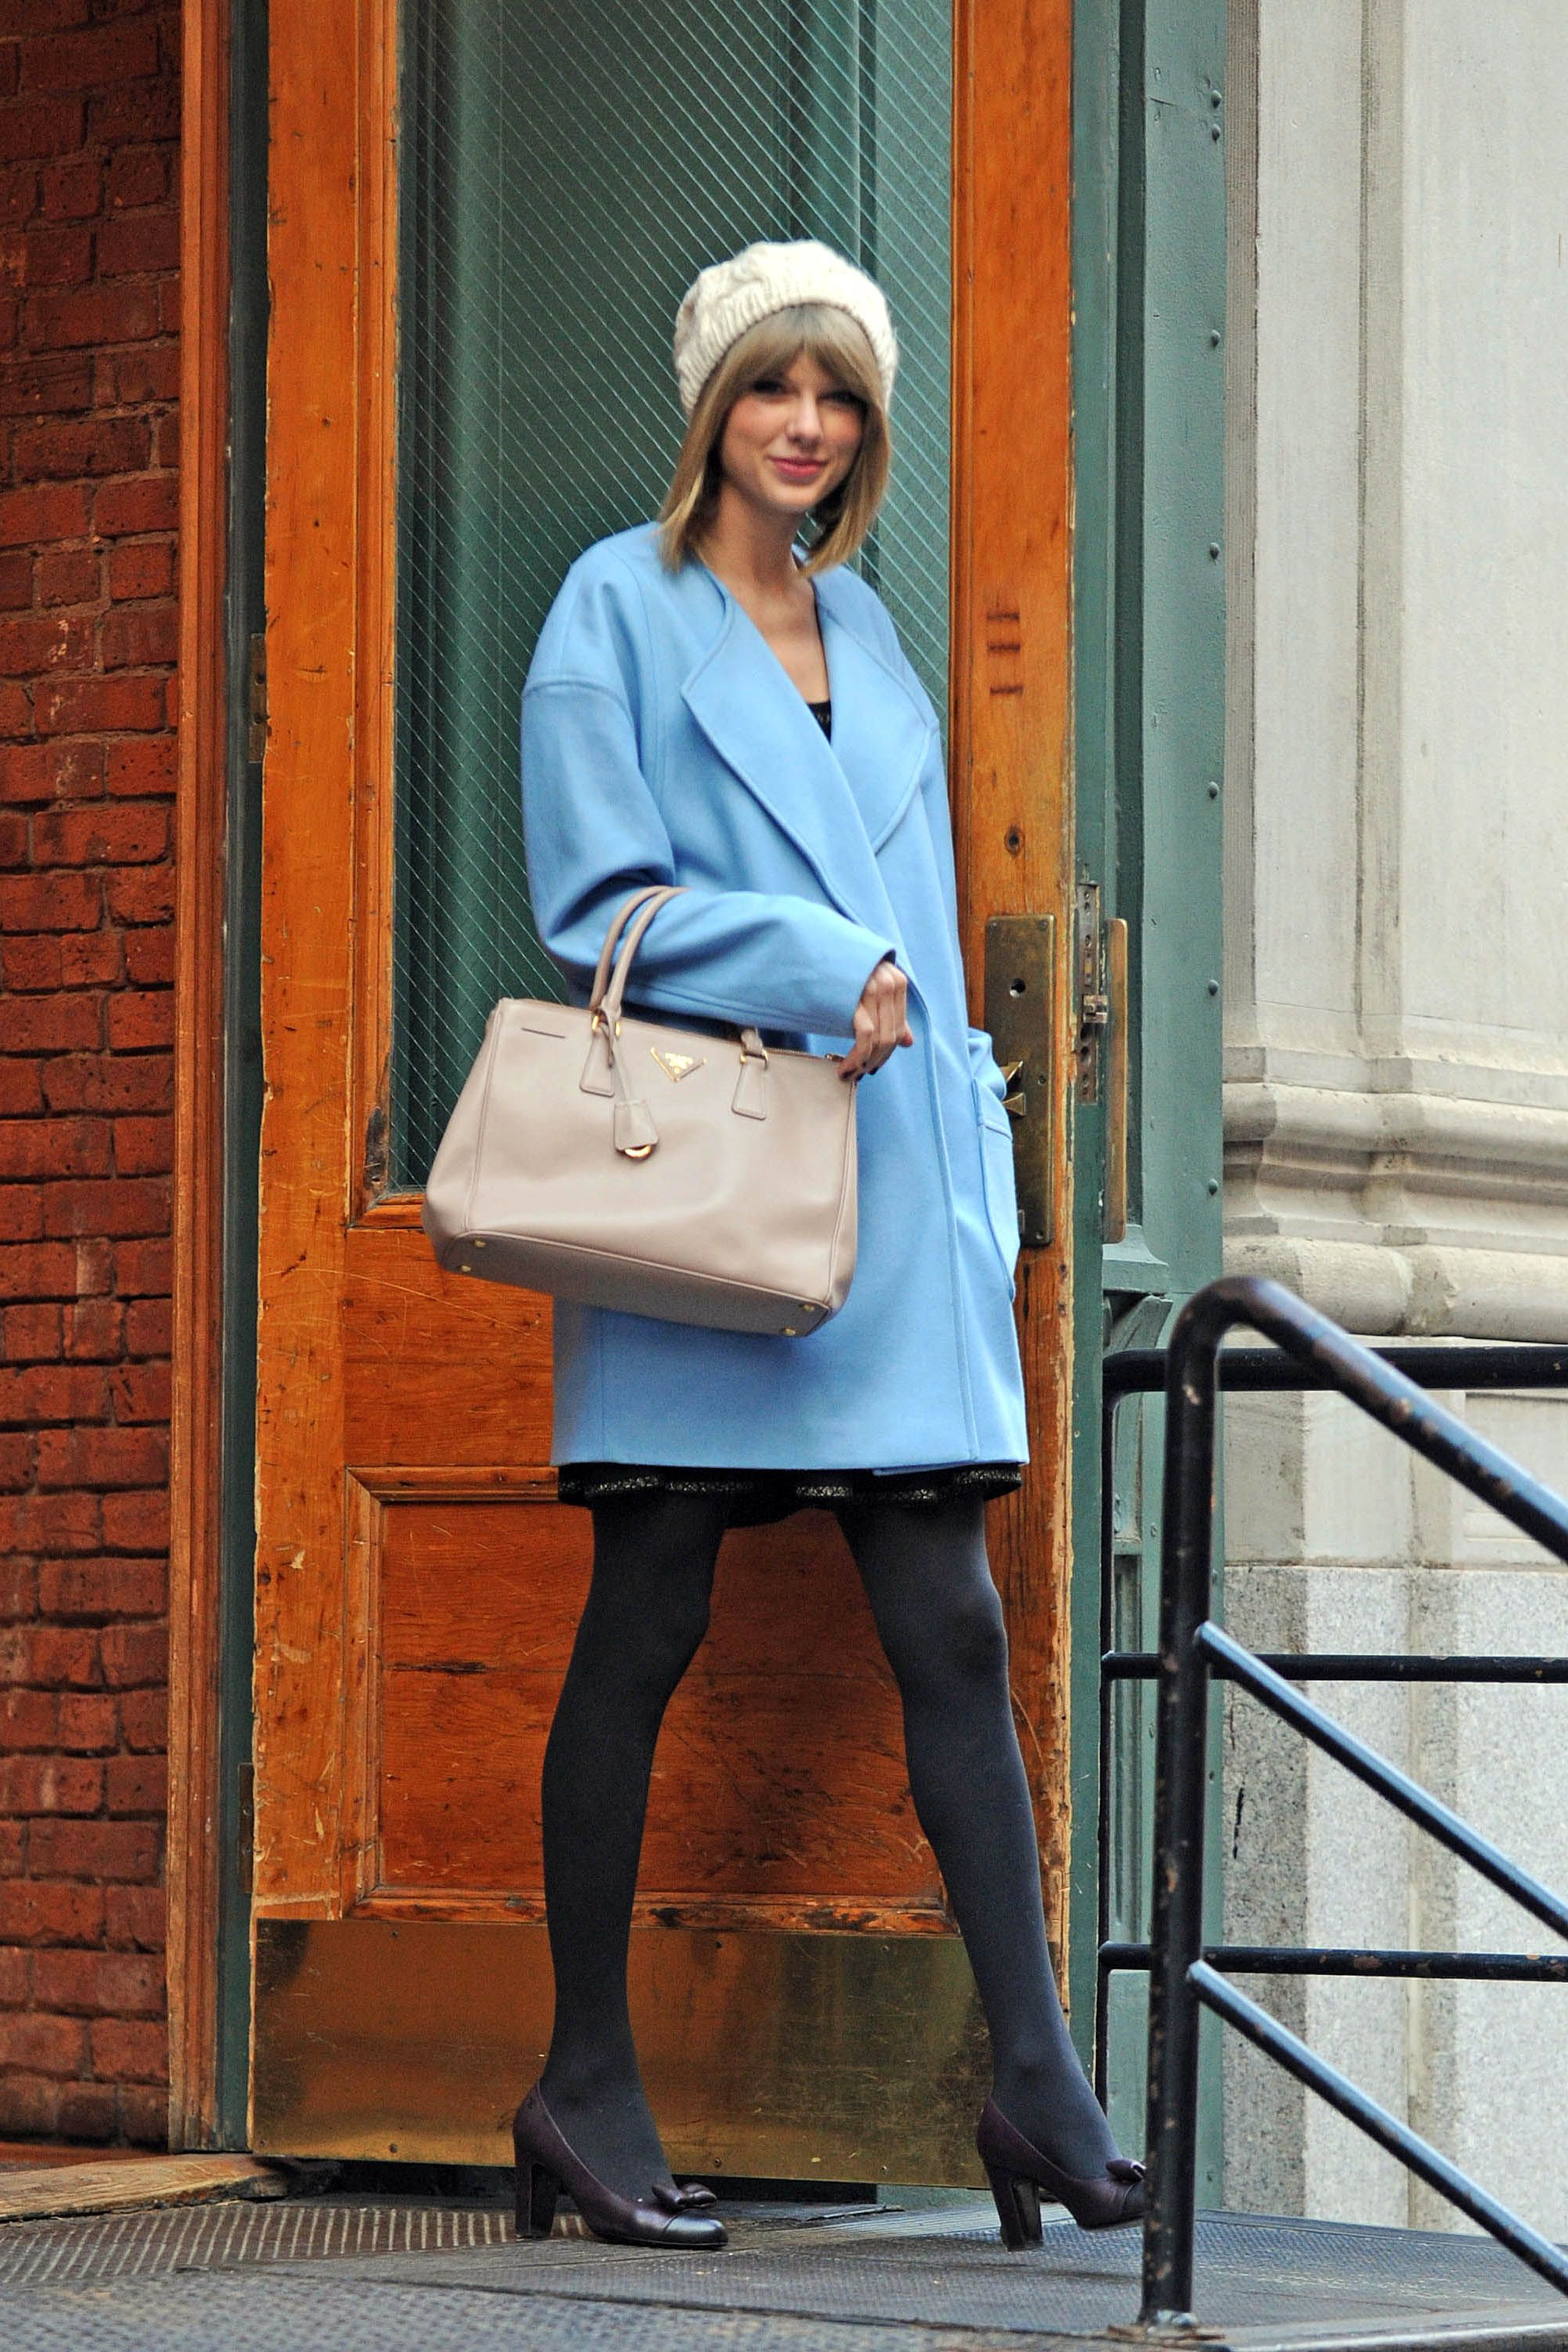 NEW YORK, NY - DECEMBER 11:  Singer Taylor Swift is seen on December 11, 2014 in New York City.  (Photo by GWR/Star Max/GC Images)